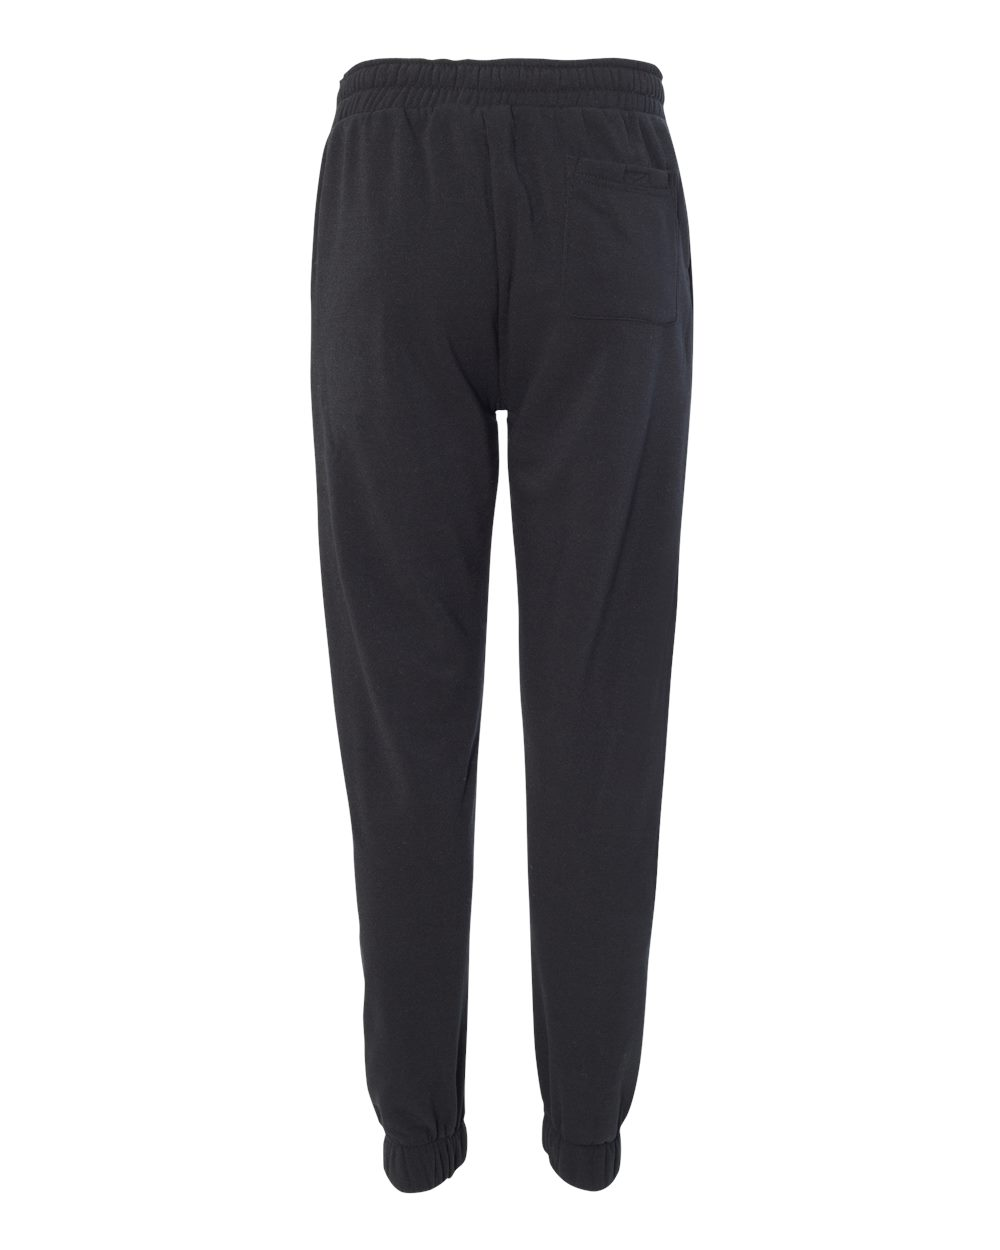 Burnside-Mens-Sweatpants-Fleece-Joggers-With-Pockets-8800-up-to-3XL thumbnail 7